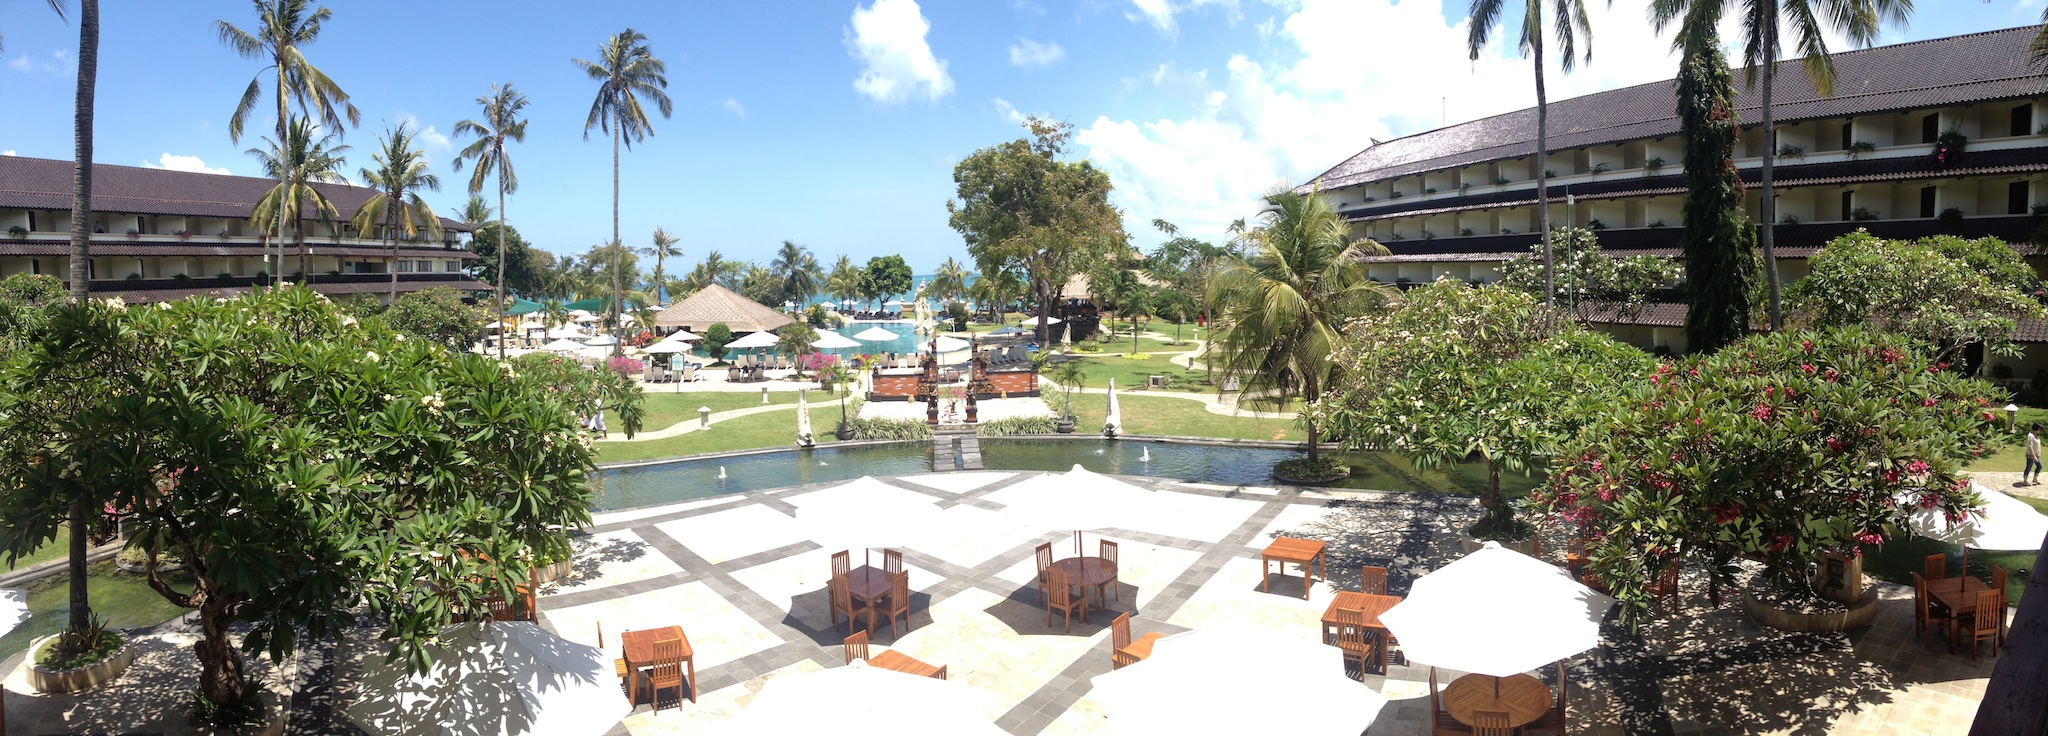 A panoramic view of the hotel I was staying at in Kuta, Bali. The Discovery Plaza was a nice enough hotel. This is a panoramic view of the grounds.